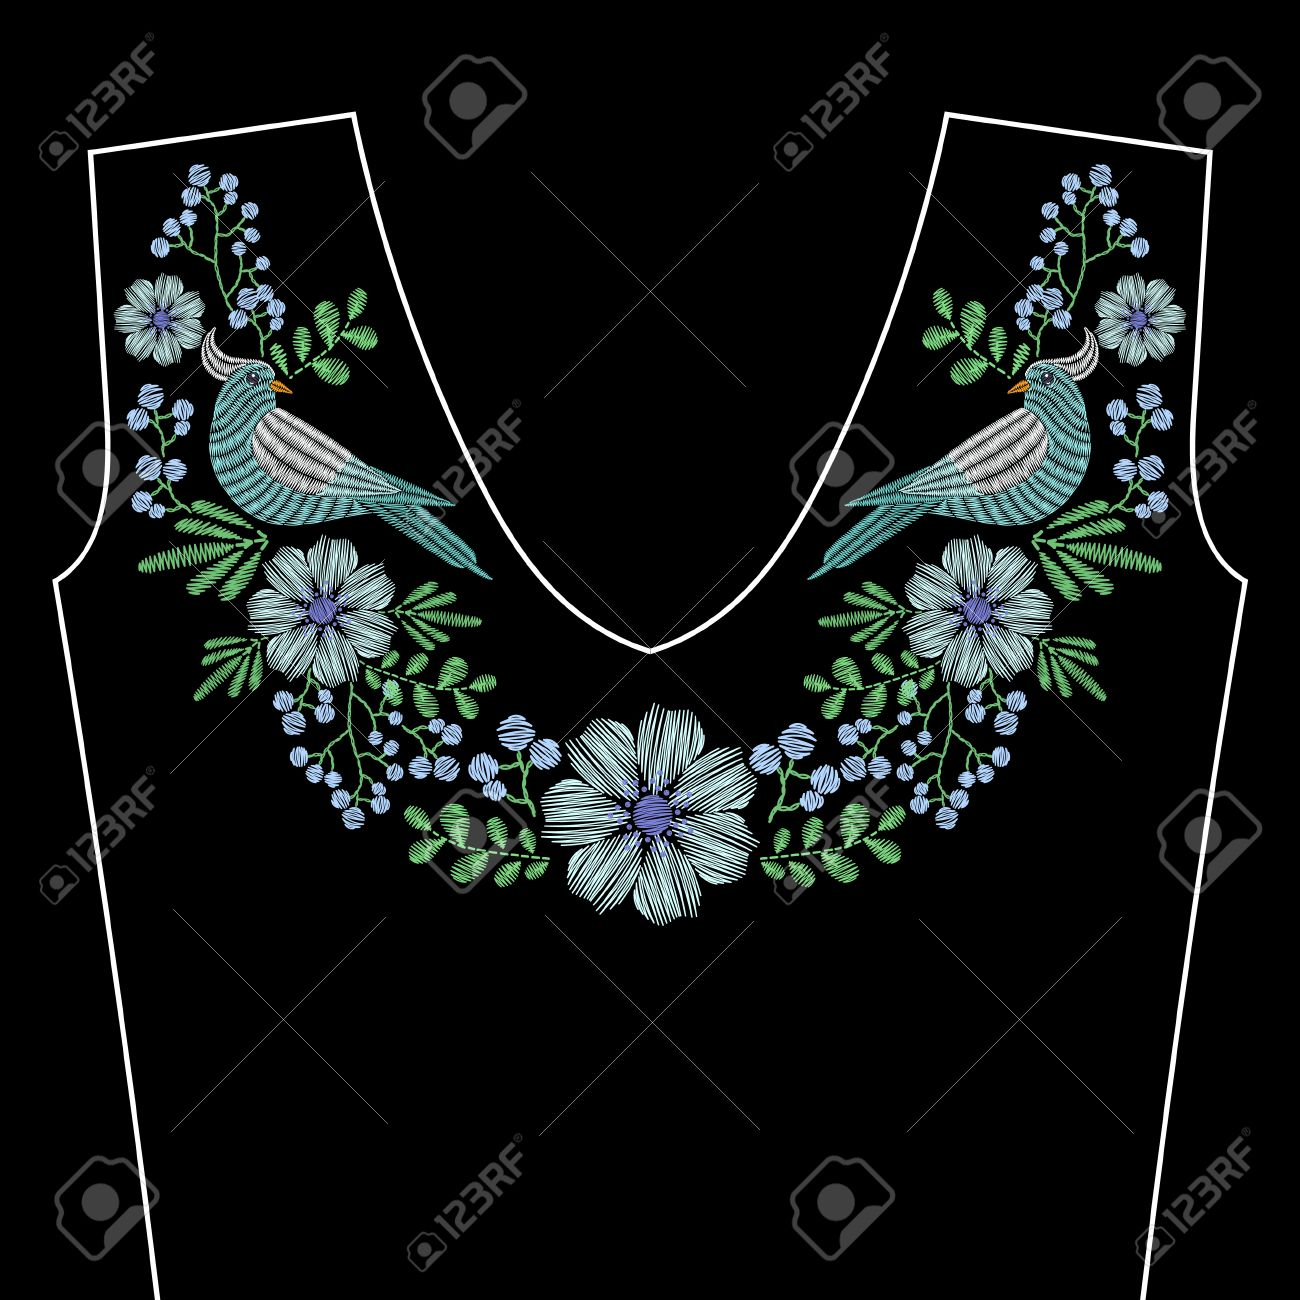 Embroidery stitches with dove bird, indigo wild flowers for neckline